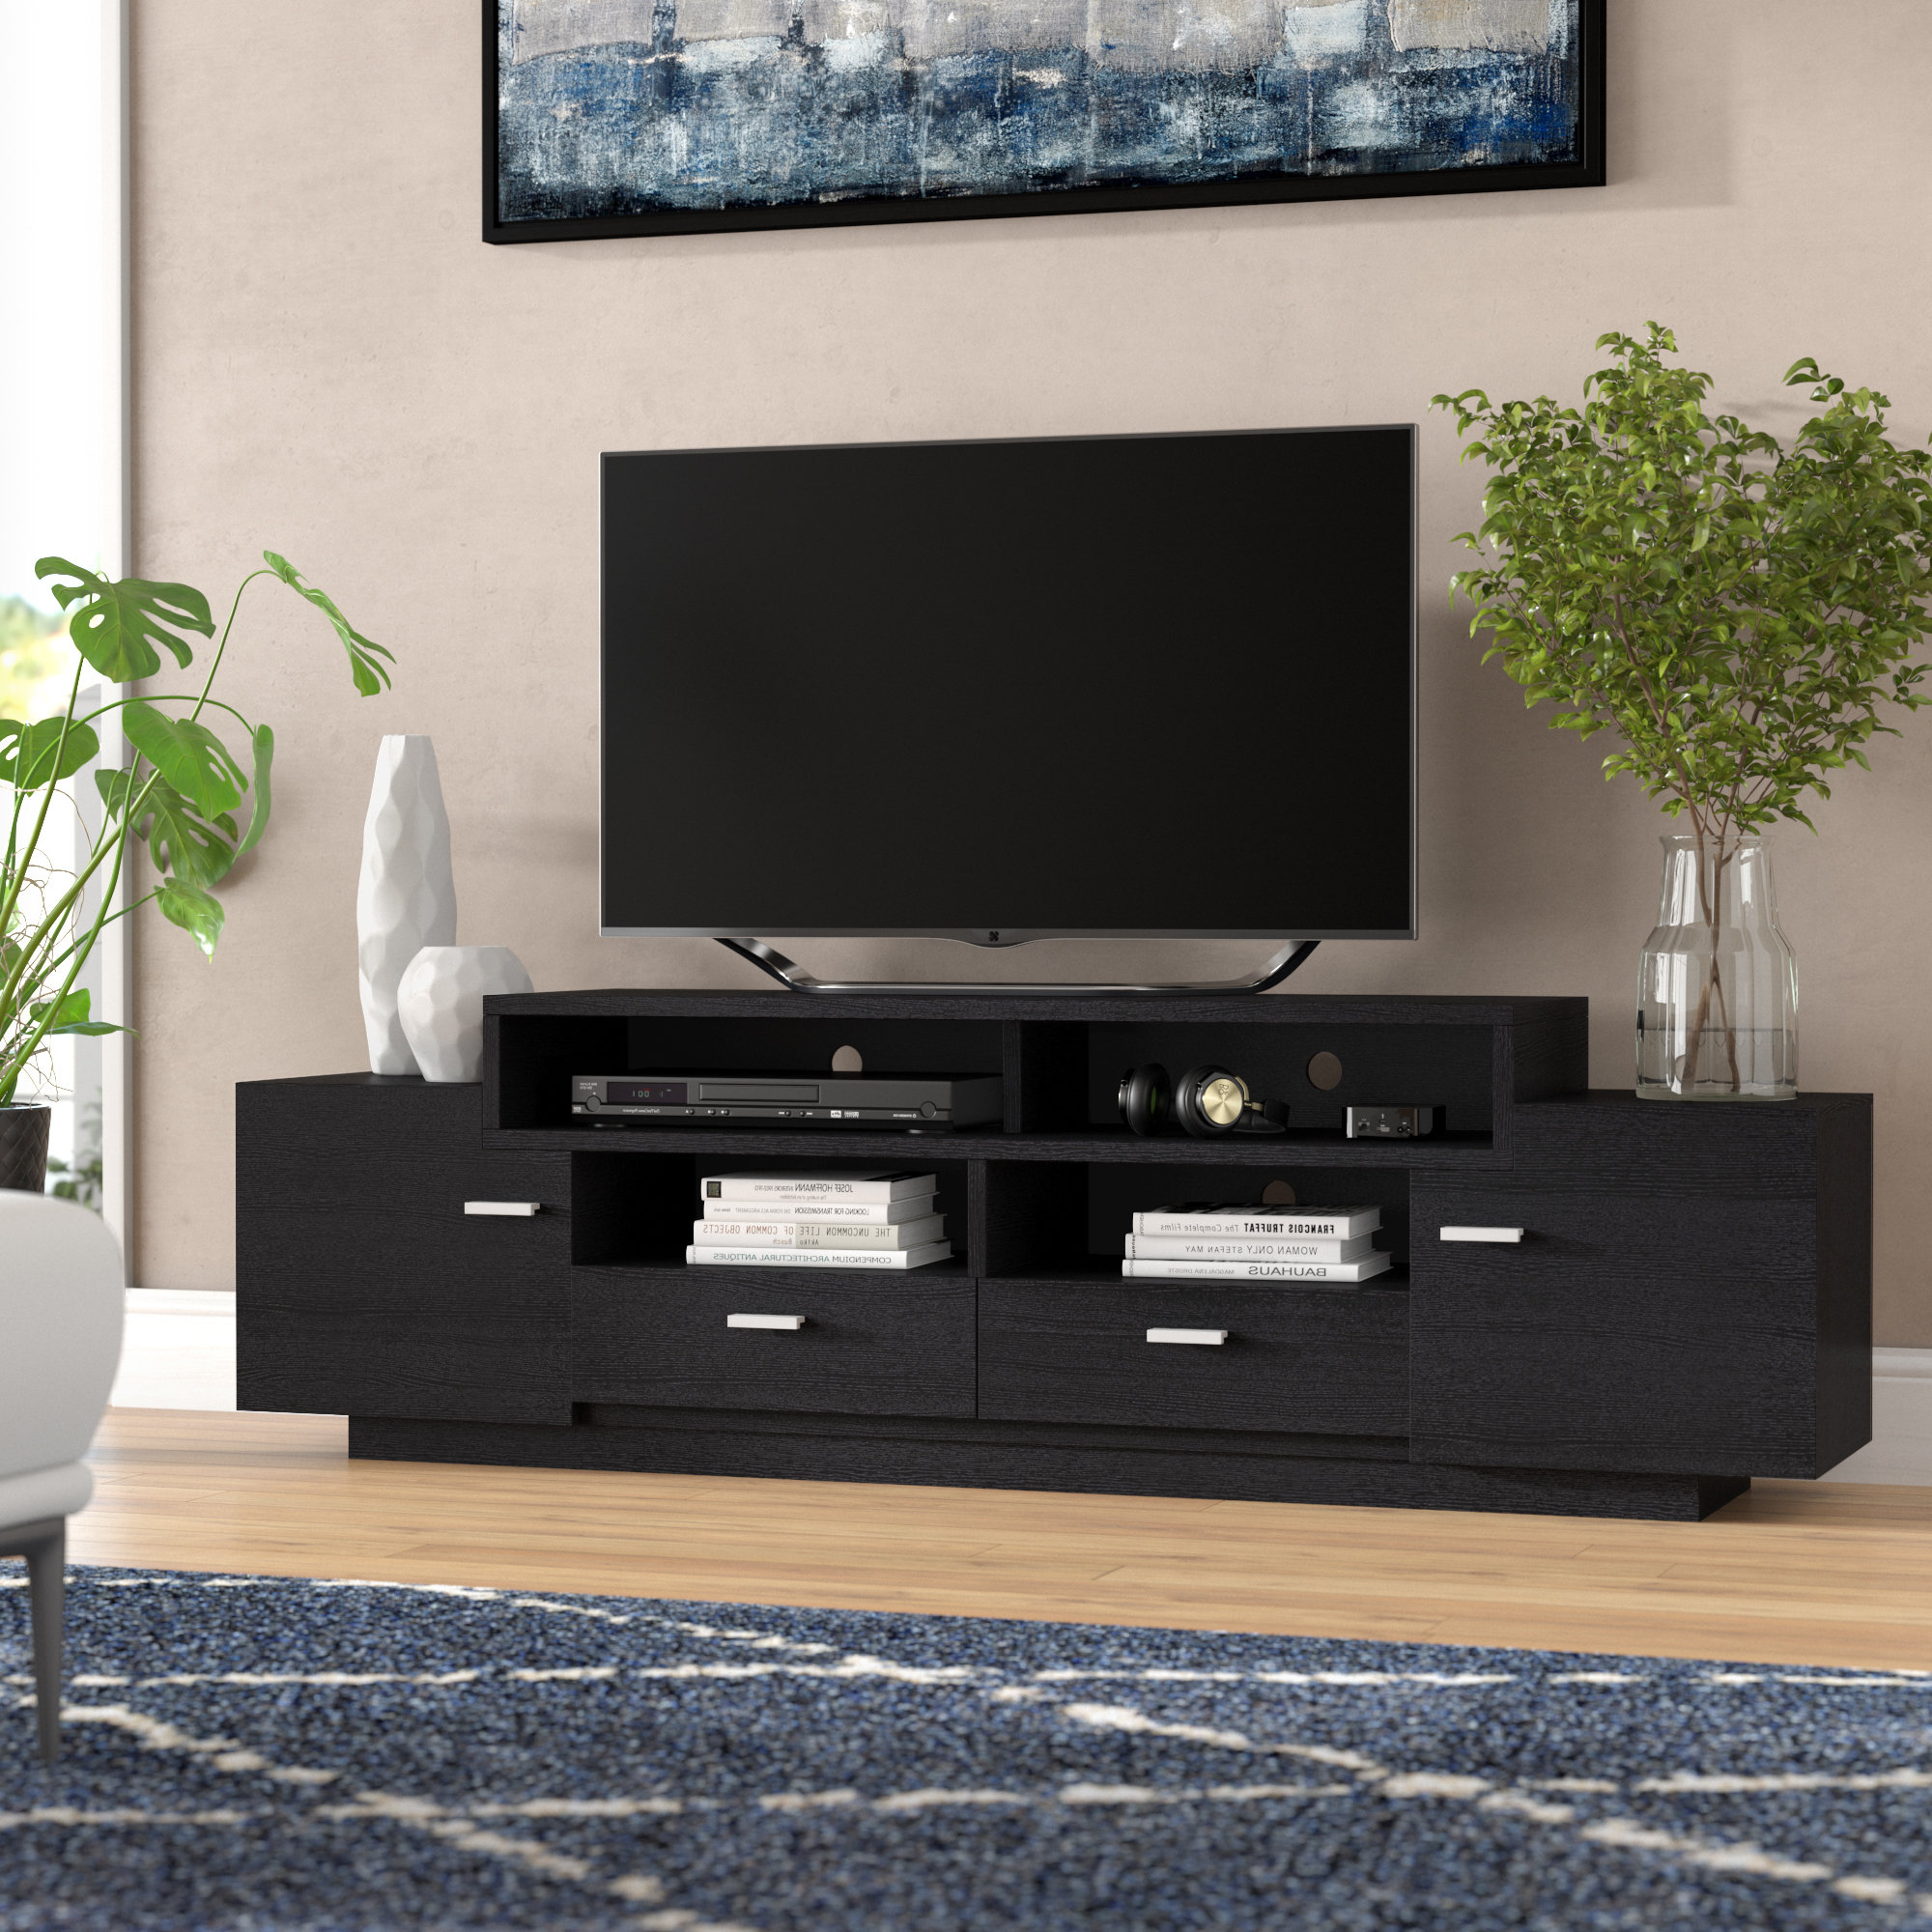 "Laurent 70 Inch Tv Stands Intended For Well Liked Wade Logan Aston Tv Stand For Tvs Up To 70"" & Reviews (Gallery 10 of 20)"